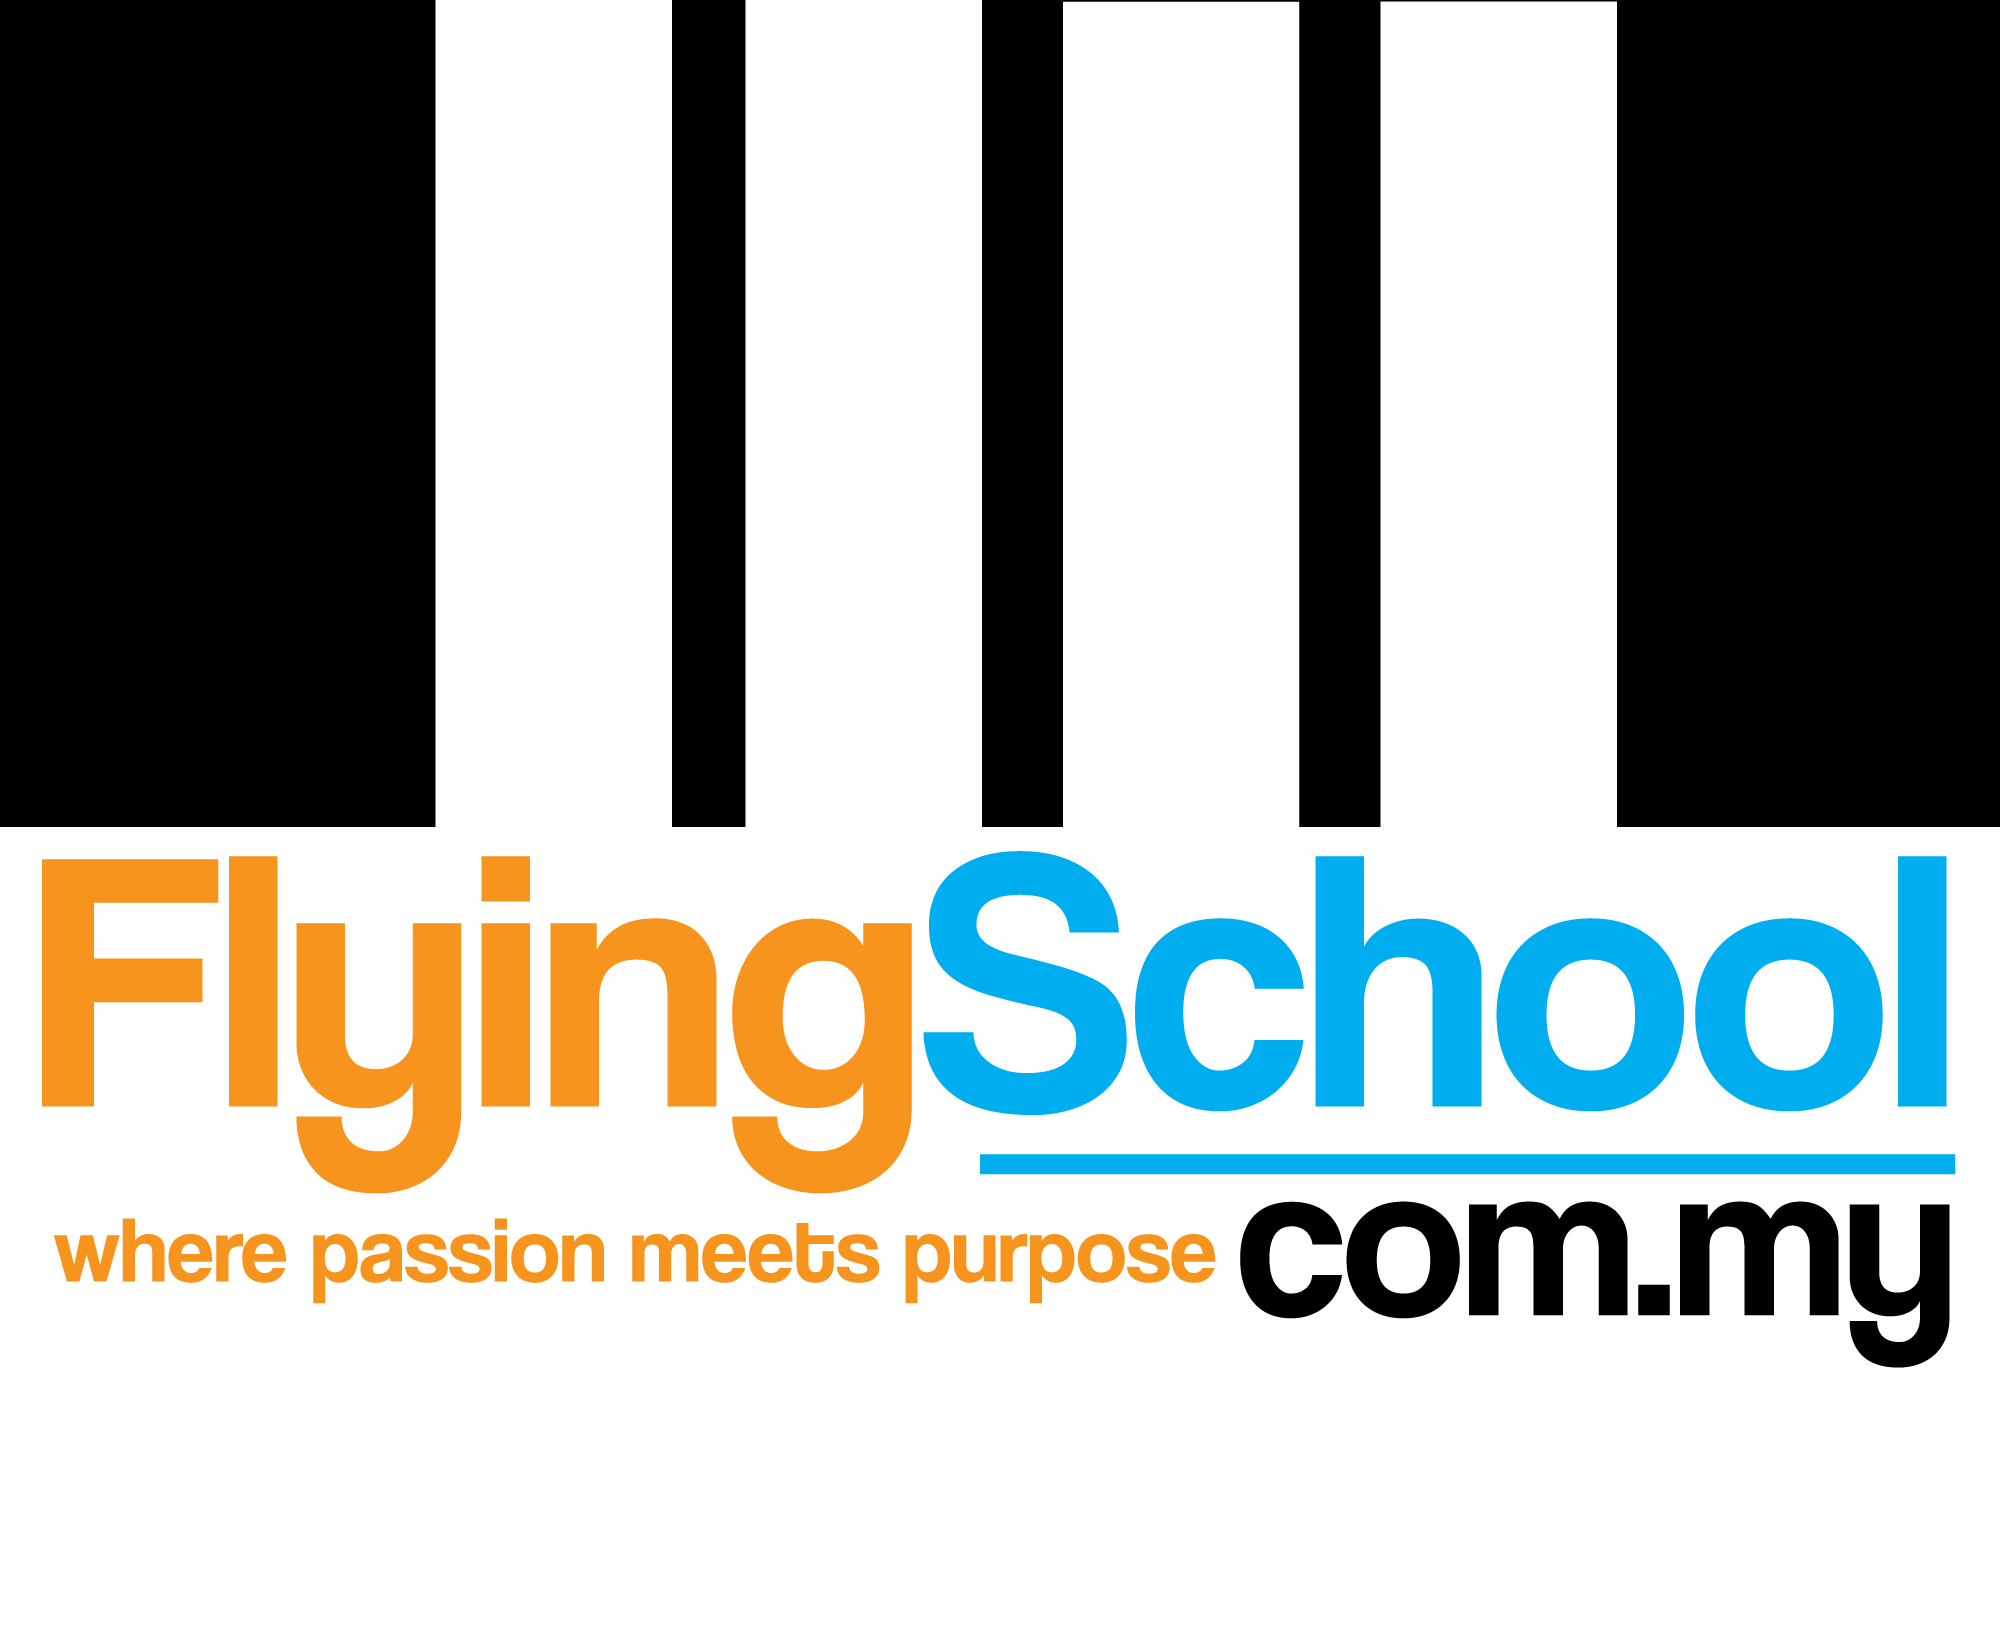 flyingschool.com.my